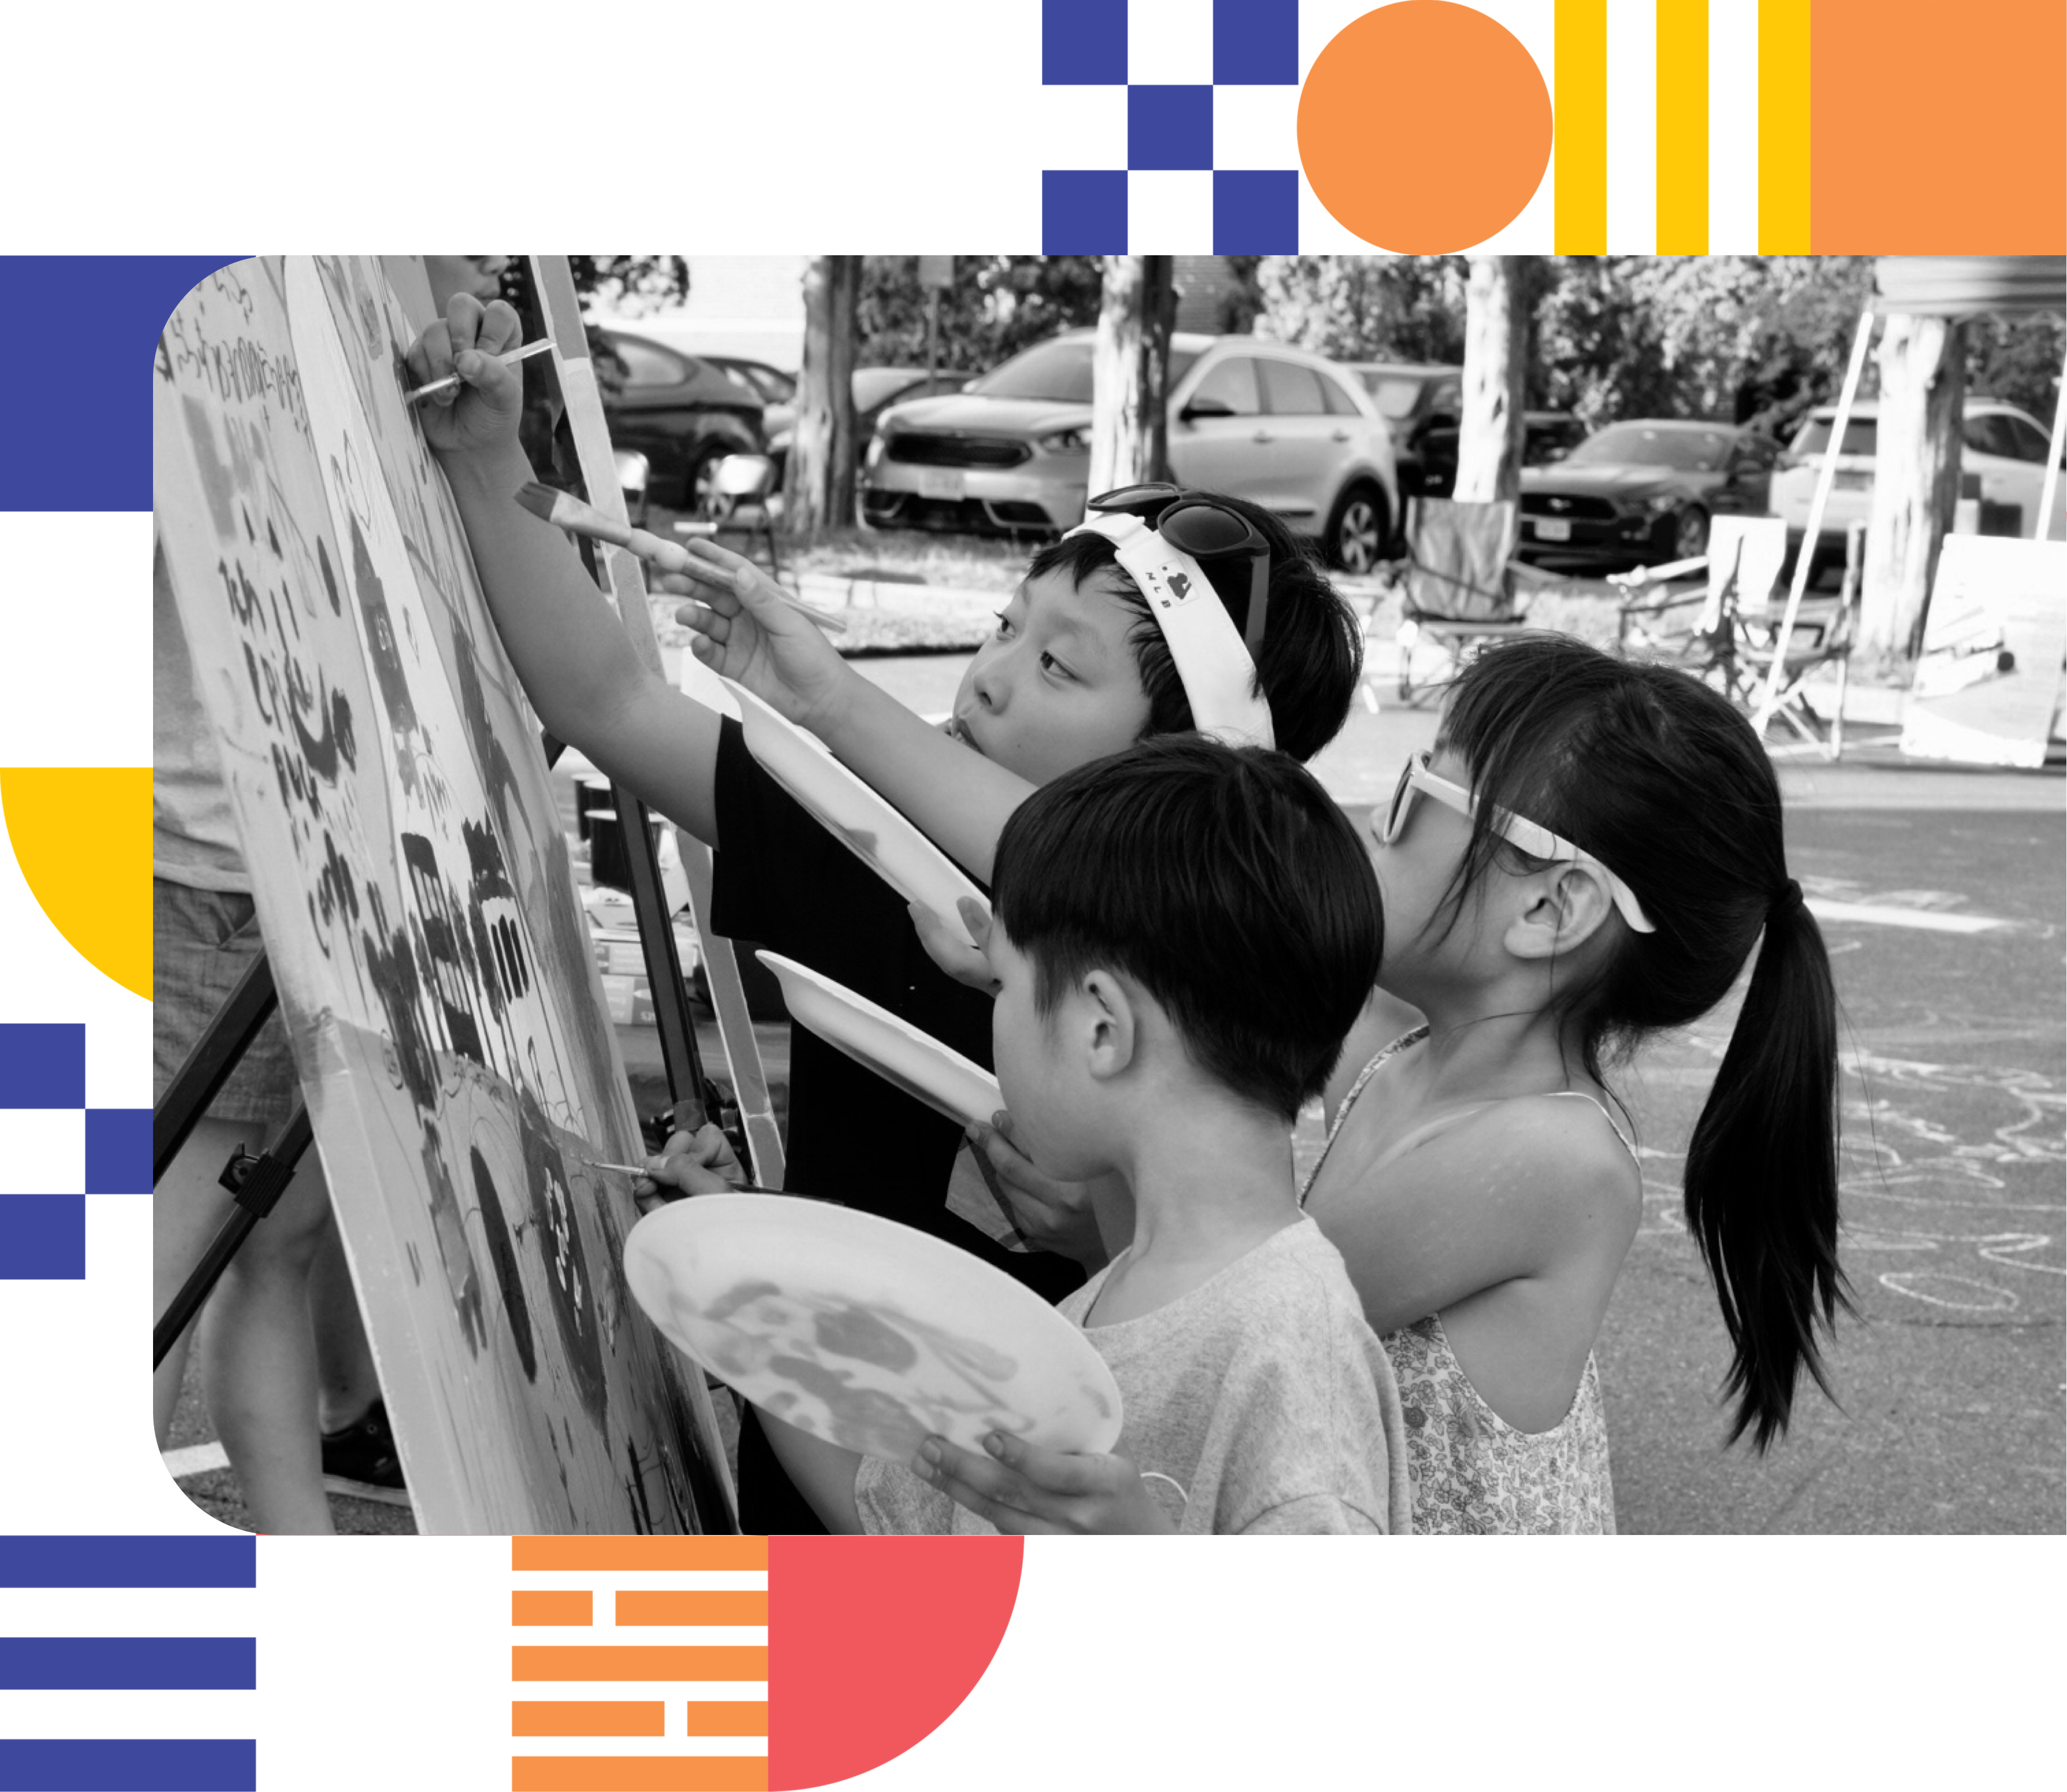 3 children painting together on a canvas featuring a map of Annandale.